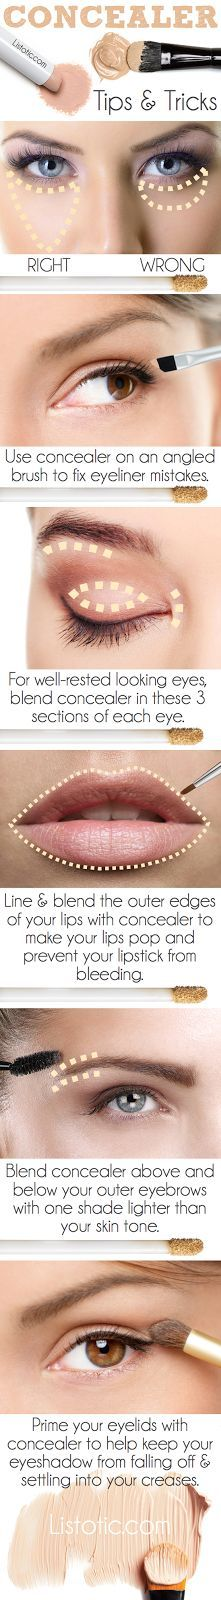 Knowing How To Use Your Concealer - Lovable Cluster